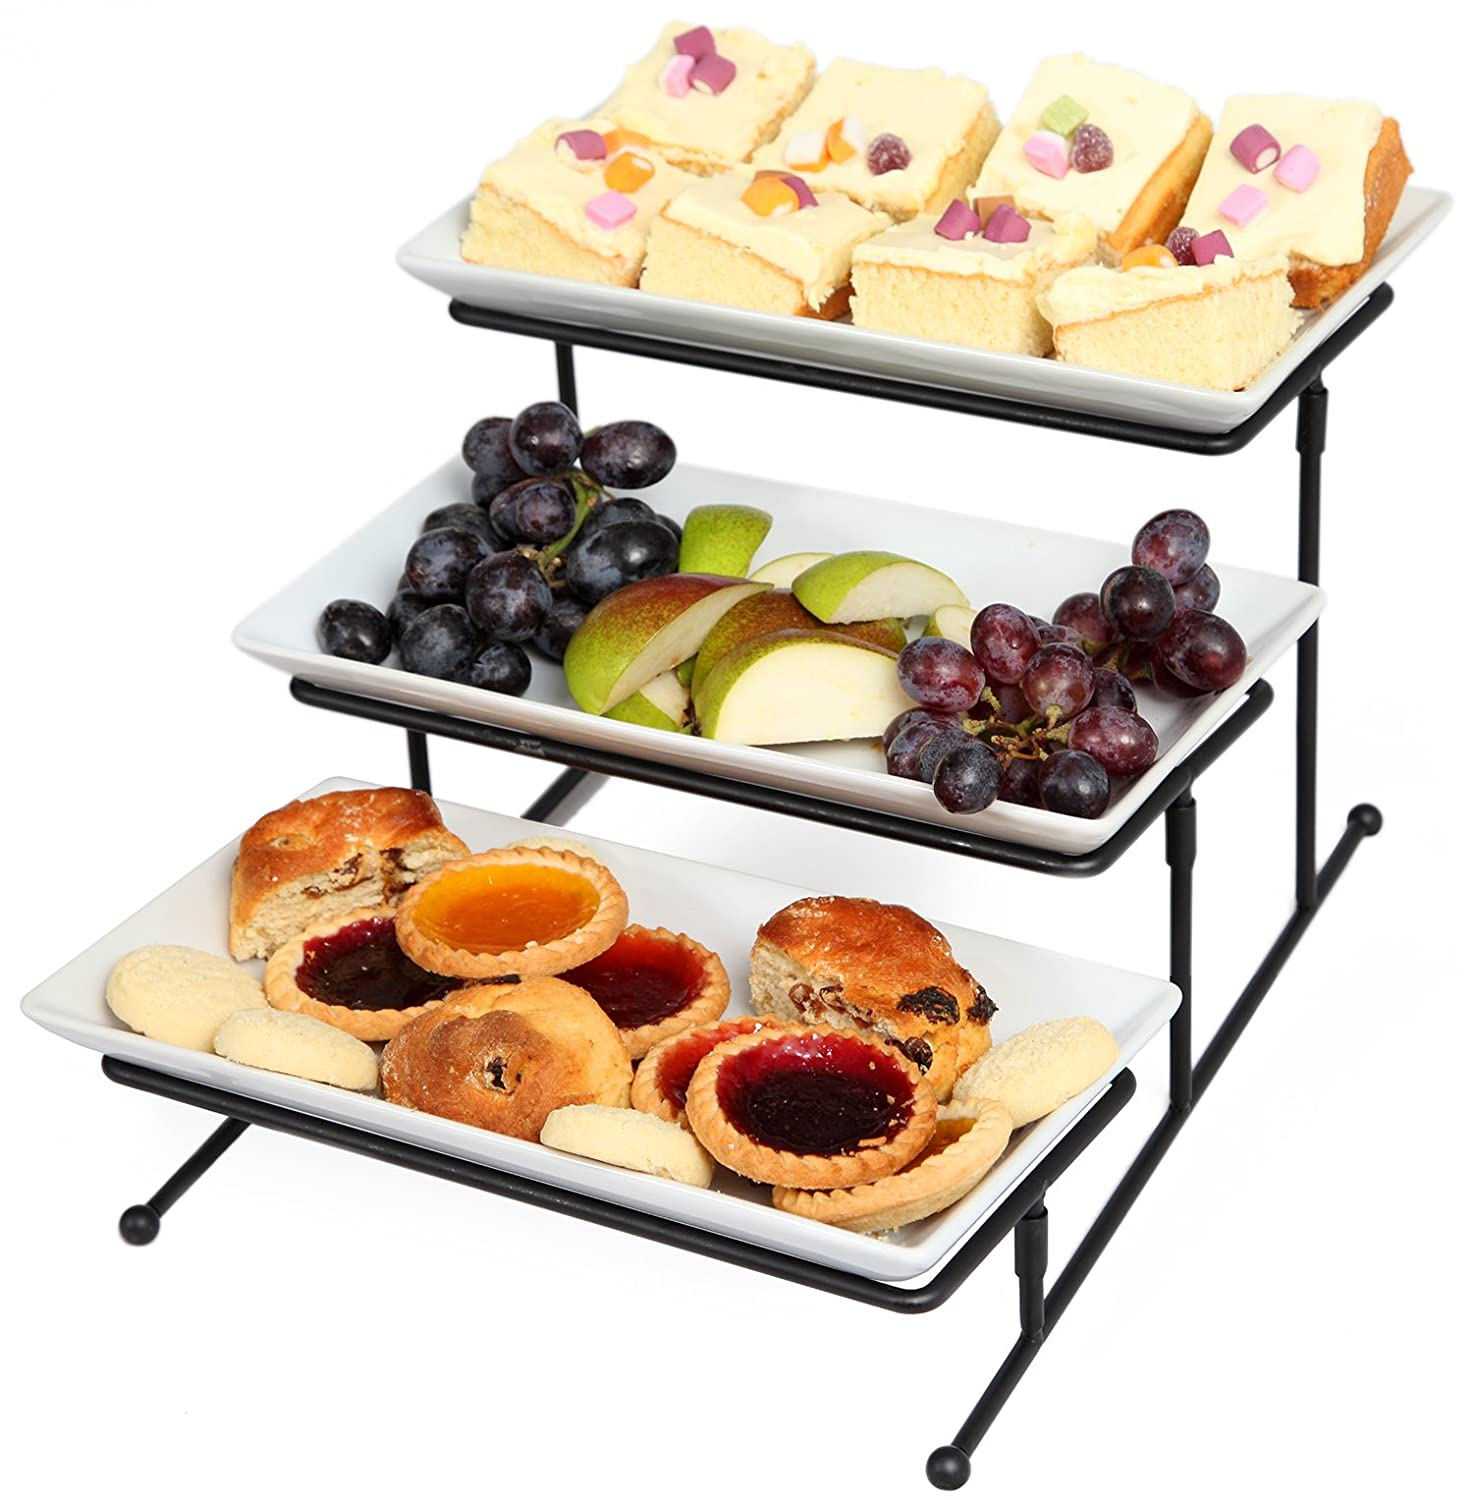 Super Amazon.com: Kenley 3 Tier Serving Tray Tiered Stand - Three-tiered  HY37